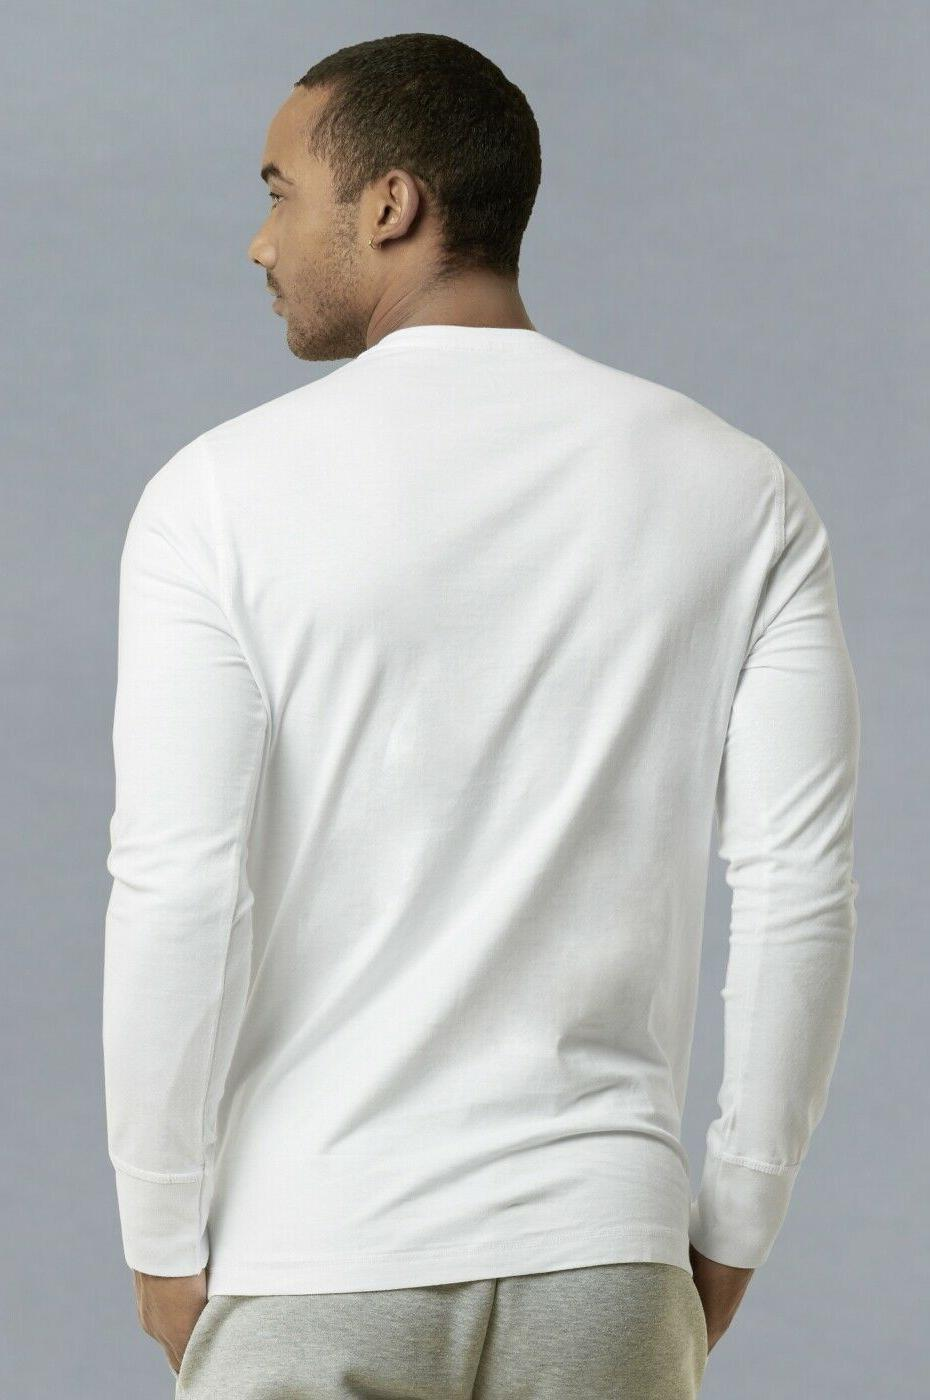 Mens Shirts Cotton Down Crew Neck Casual S M